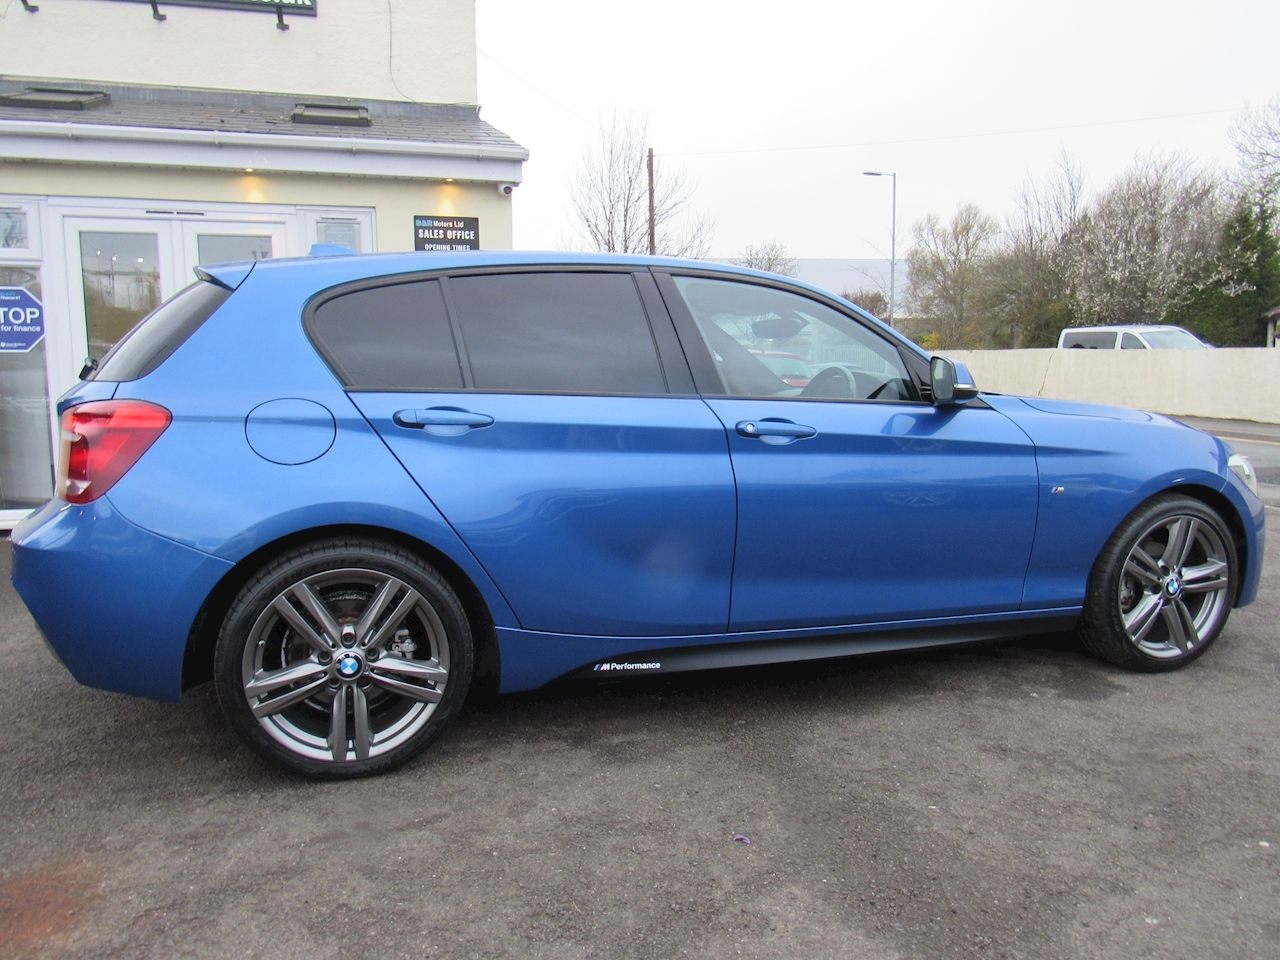 BMW 1 Series 116D M Sport Hatchback 2.0 Automatic Diesel